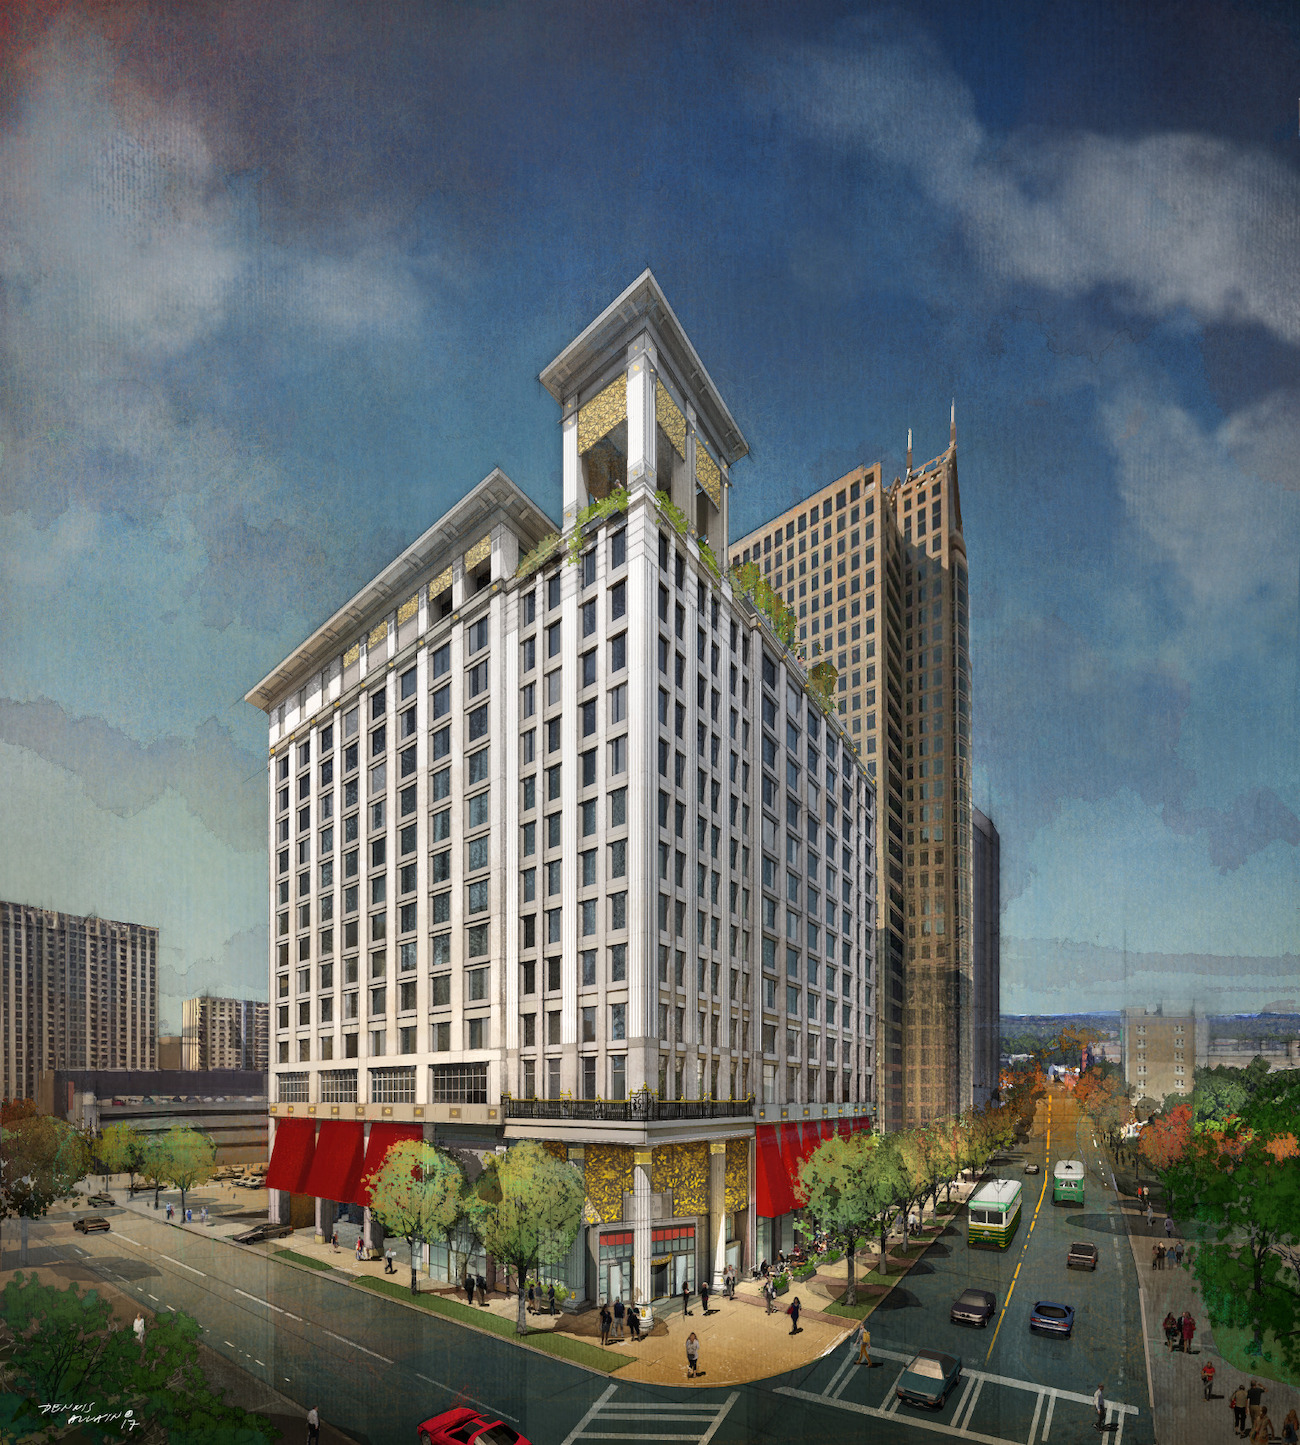 CHARLOTTE FIVE – Grand Bohemian Charlotte Tops Out Adding to Luxe Hotel Market